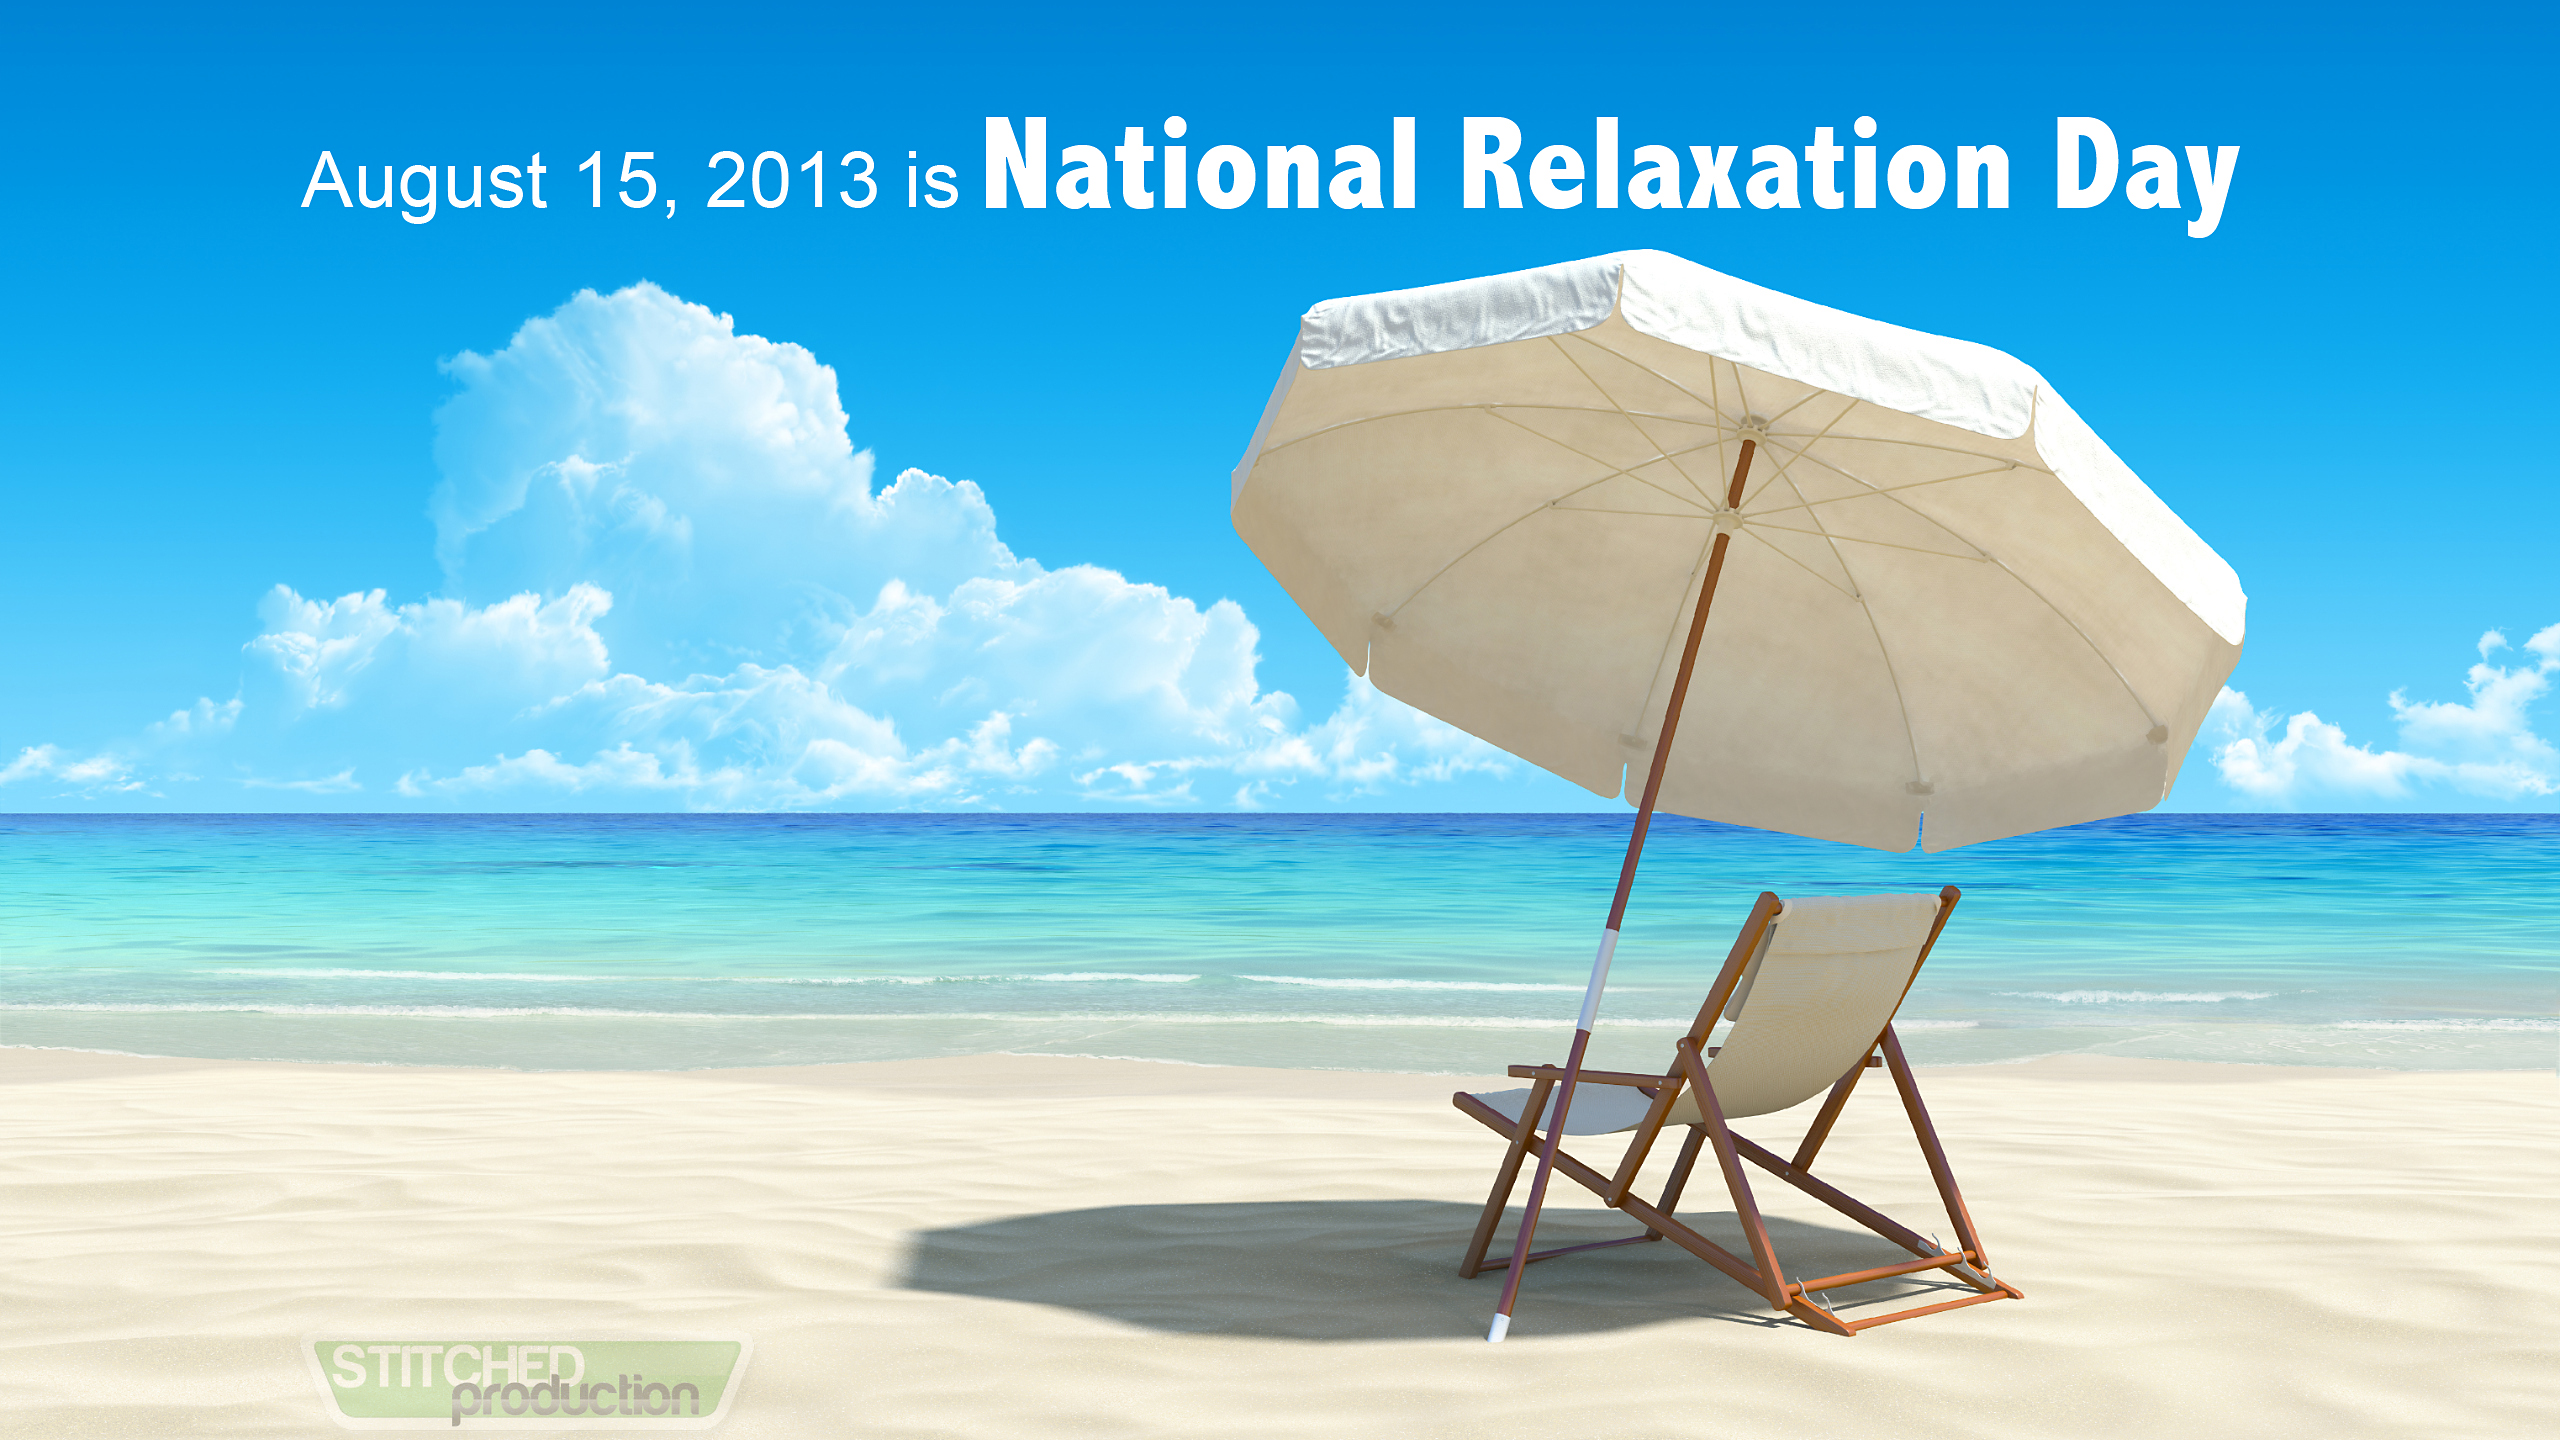 National Relaxation Day by Stitched Production